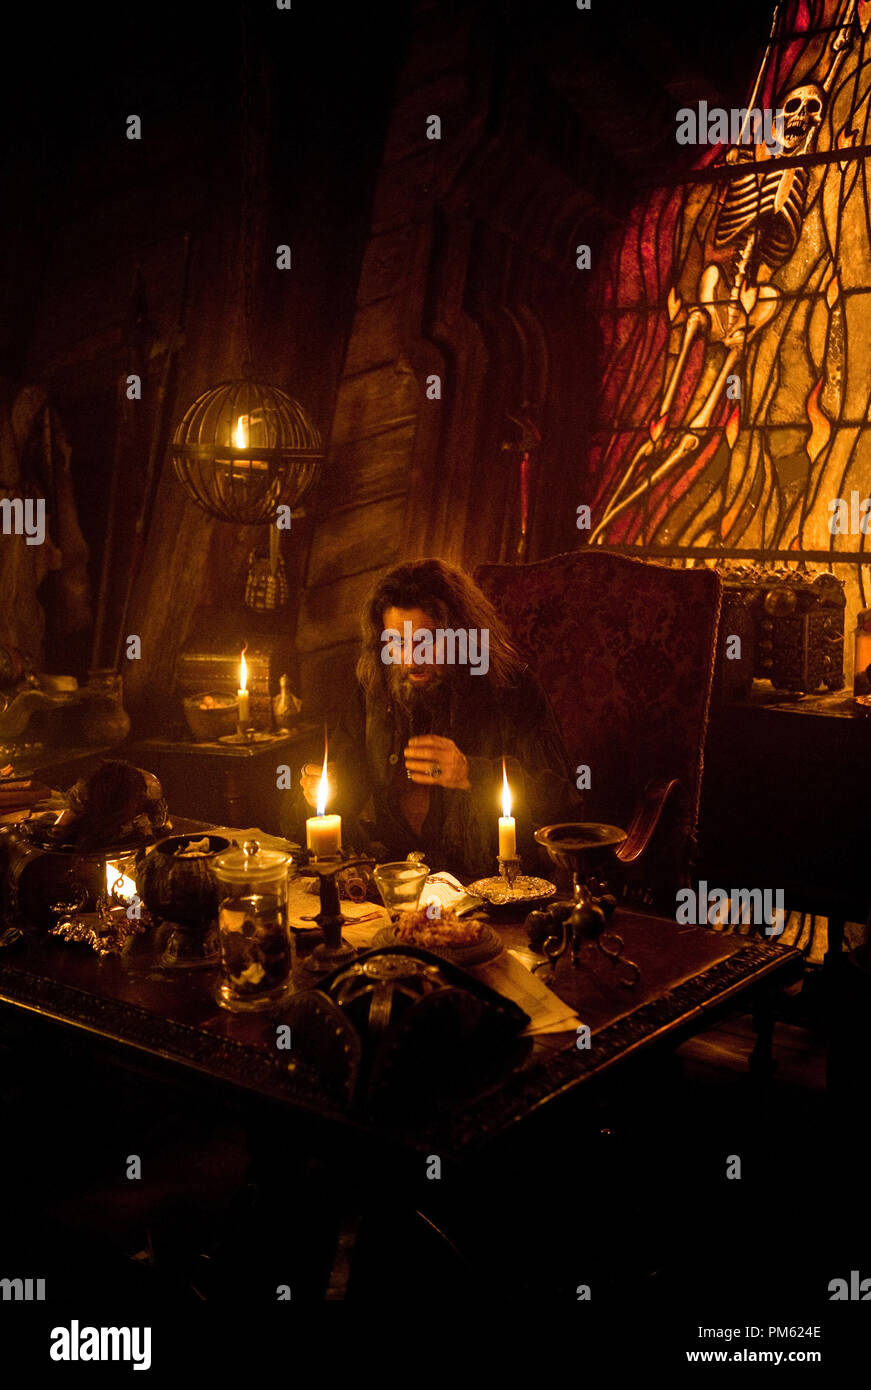 """PIRATES OF THE CARIBBEAN: ON STRANGER TIDES"" Blackbeard (IAN McSHANE) at  work on the dark arts in the sinister captain's cabin of the Queen Anne's  Revenge."